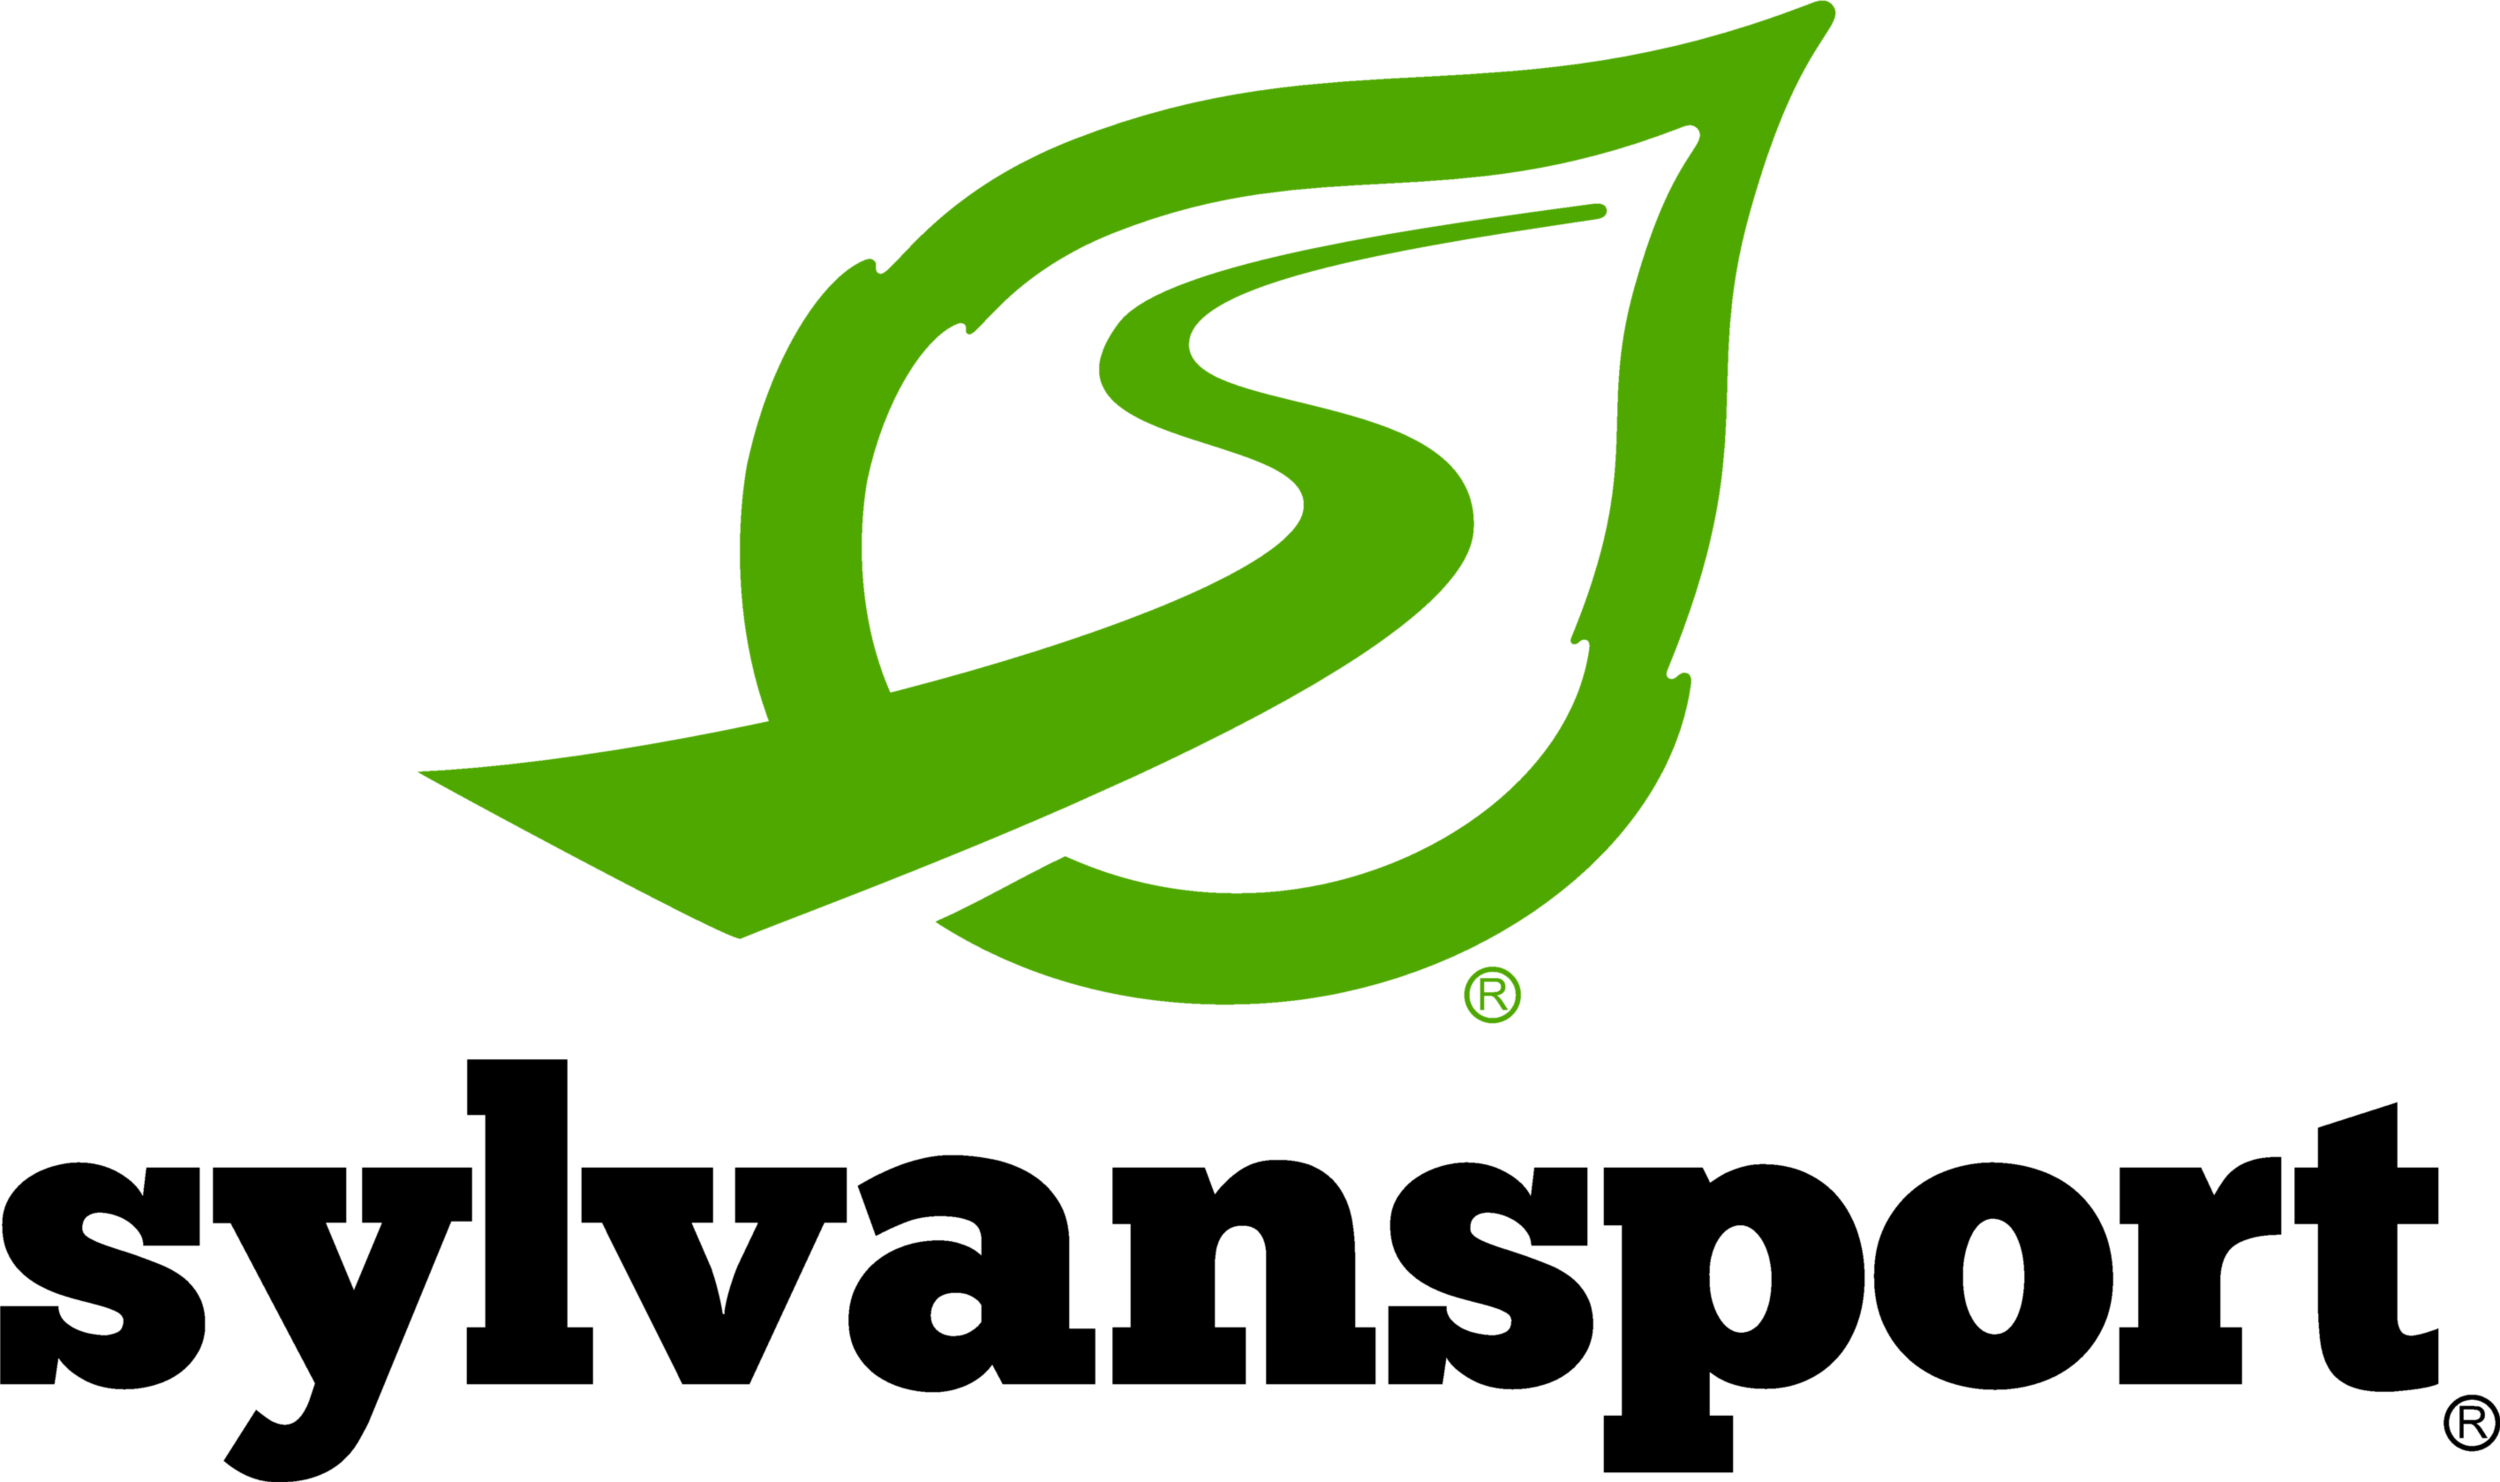 2018 SS logo black and green 1.png